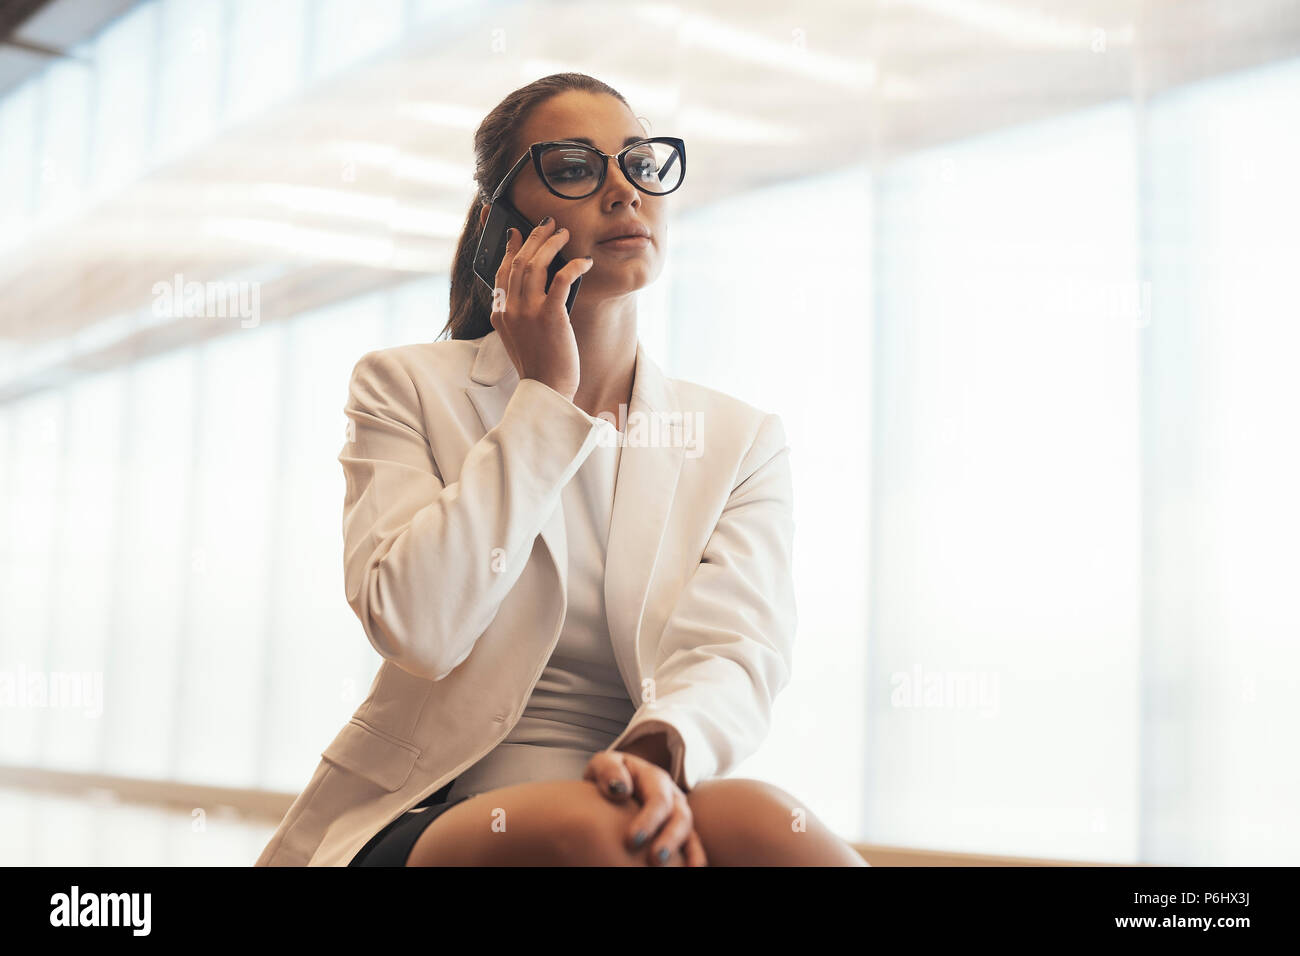 Young business spectacled woman in white jacket talking by mobile phone. - Stock Image